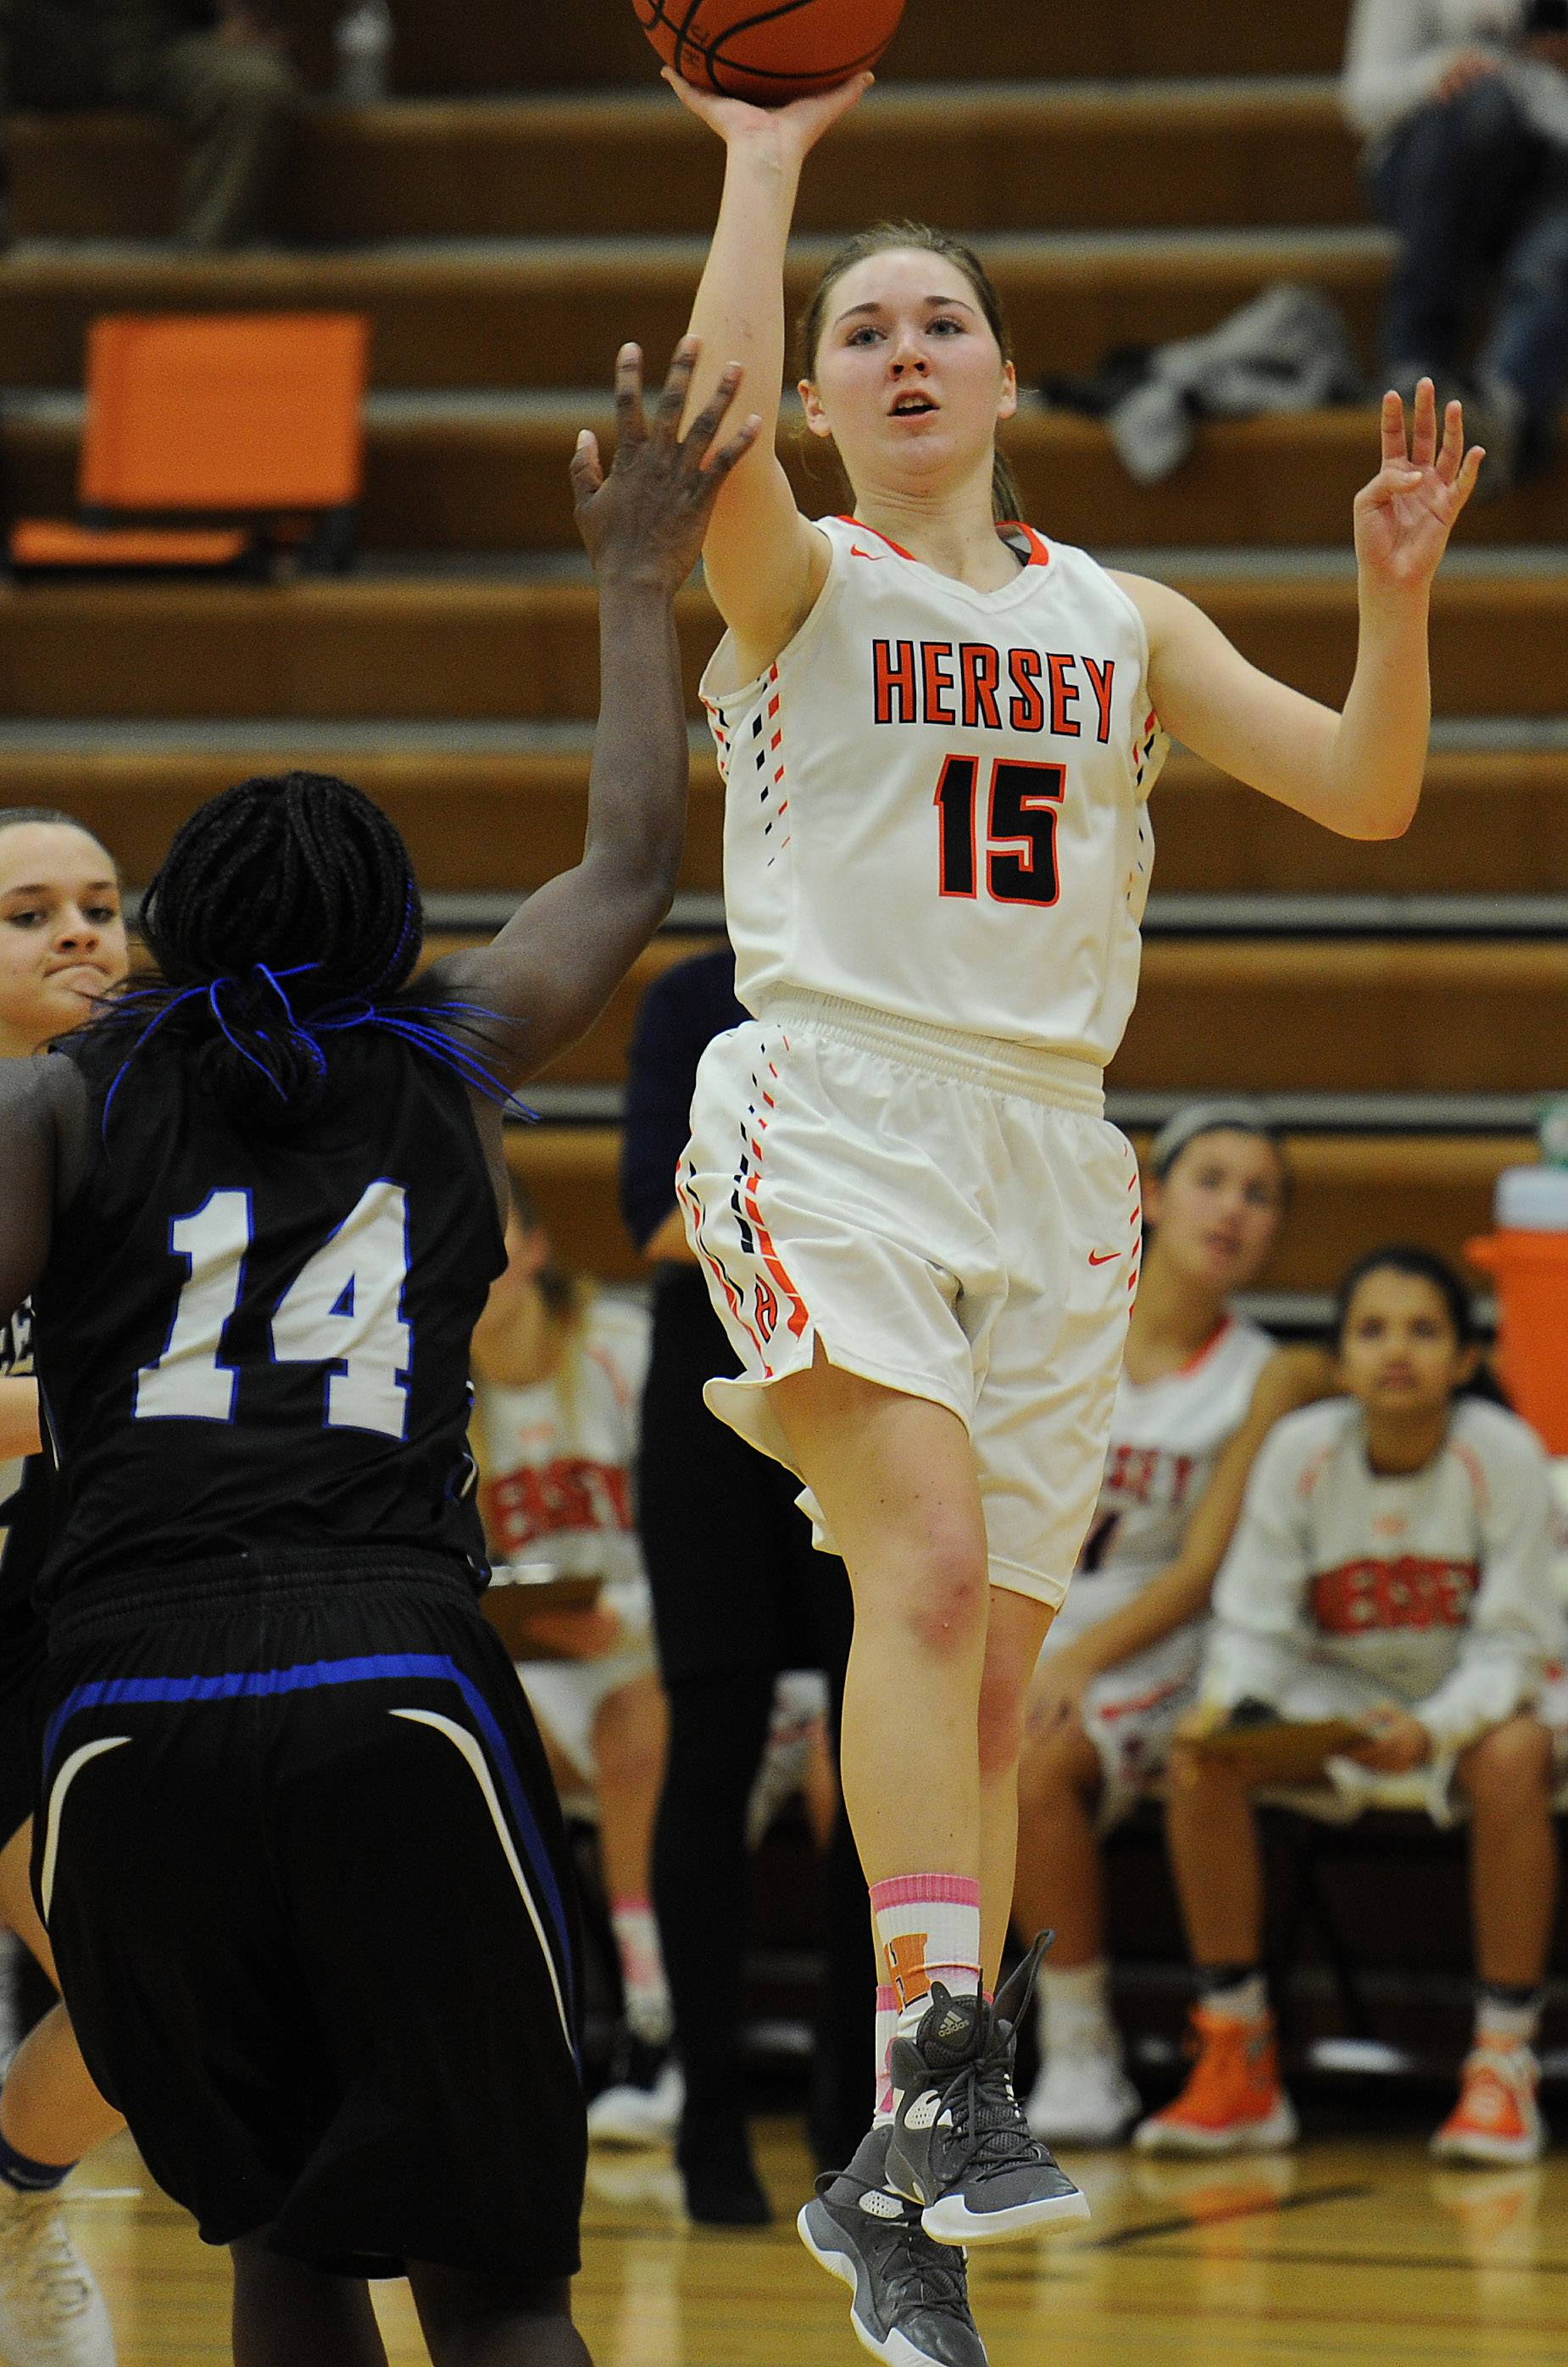 Collins comes through as Hersey tops Wheeling